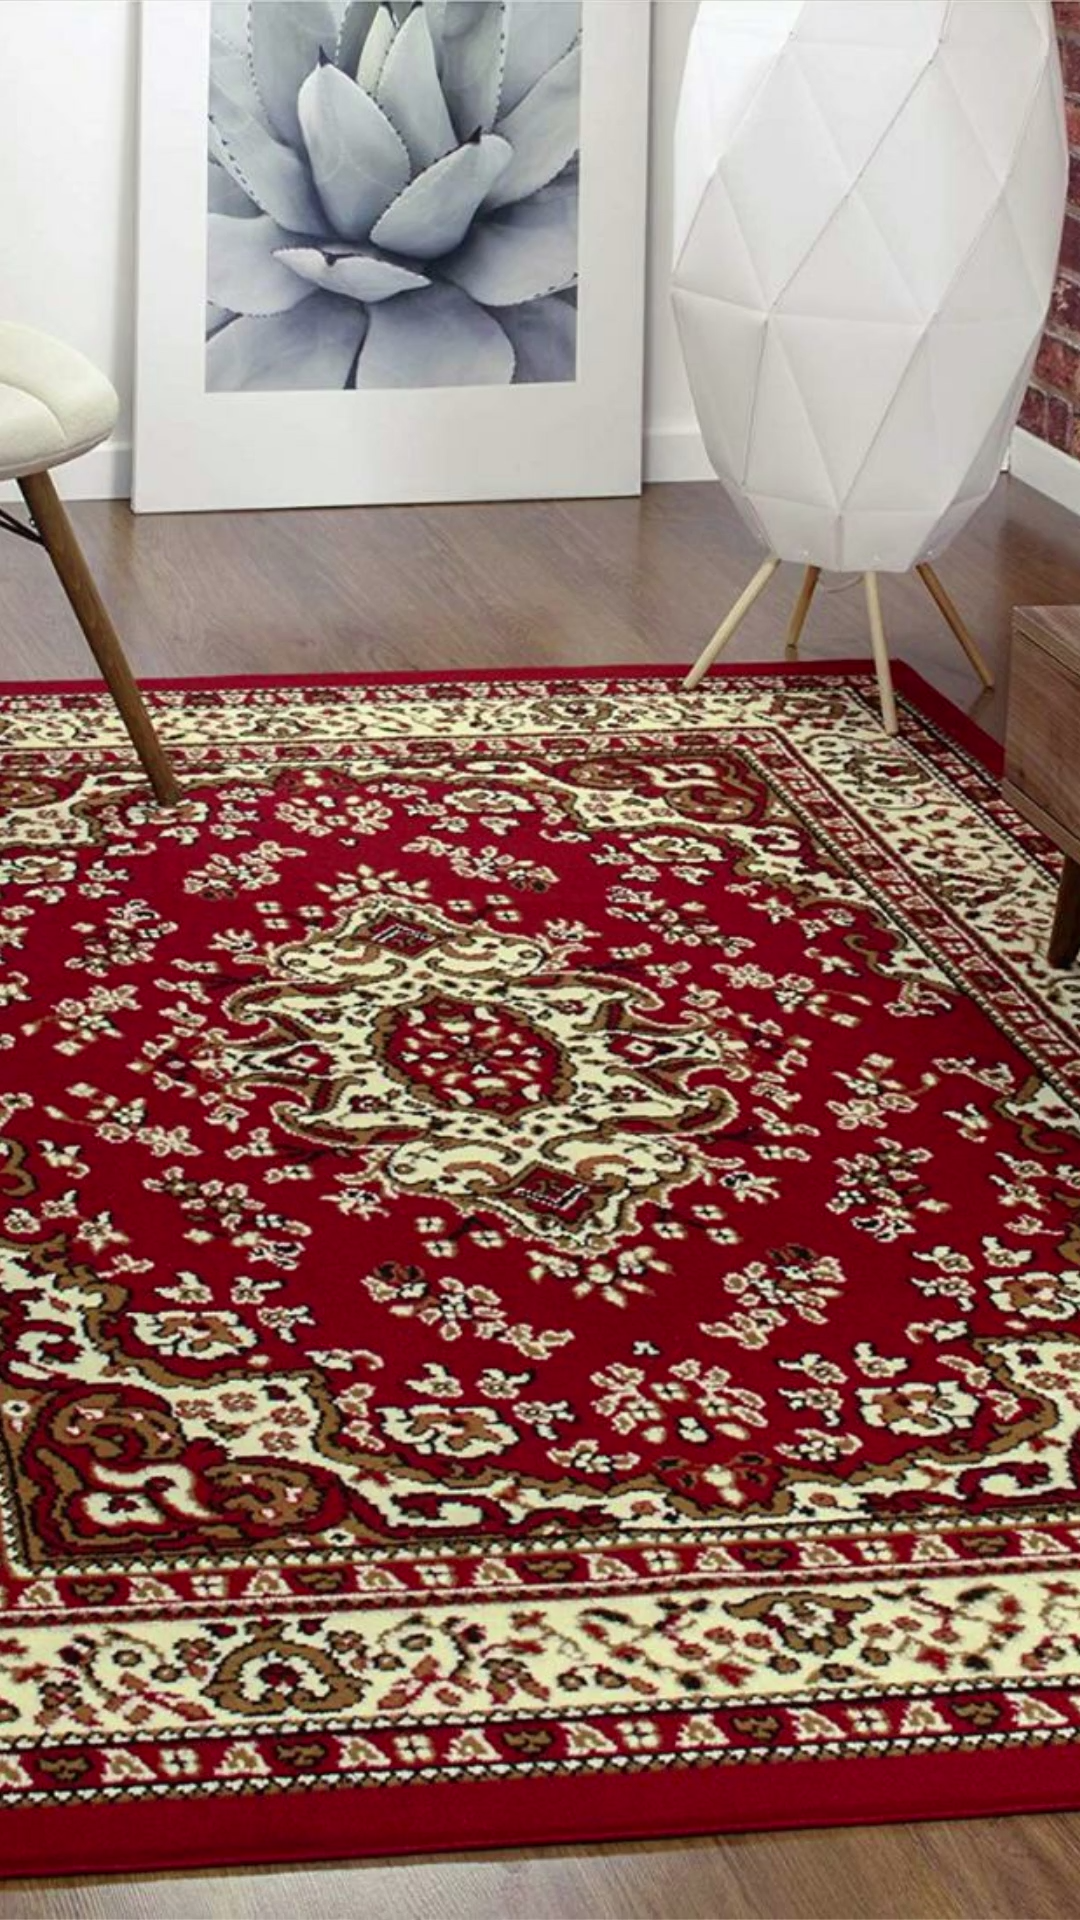 Oriental Area Rug In Living Room Bedroom Family Room Interior Decorating Home Decor Carpet Id Area Be In 2020 Living Room Colors Rugs In Living Room Kid Room Decor